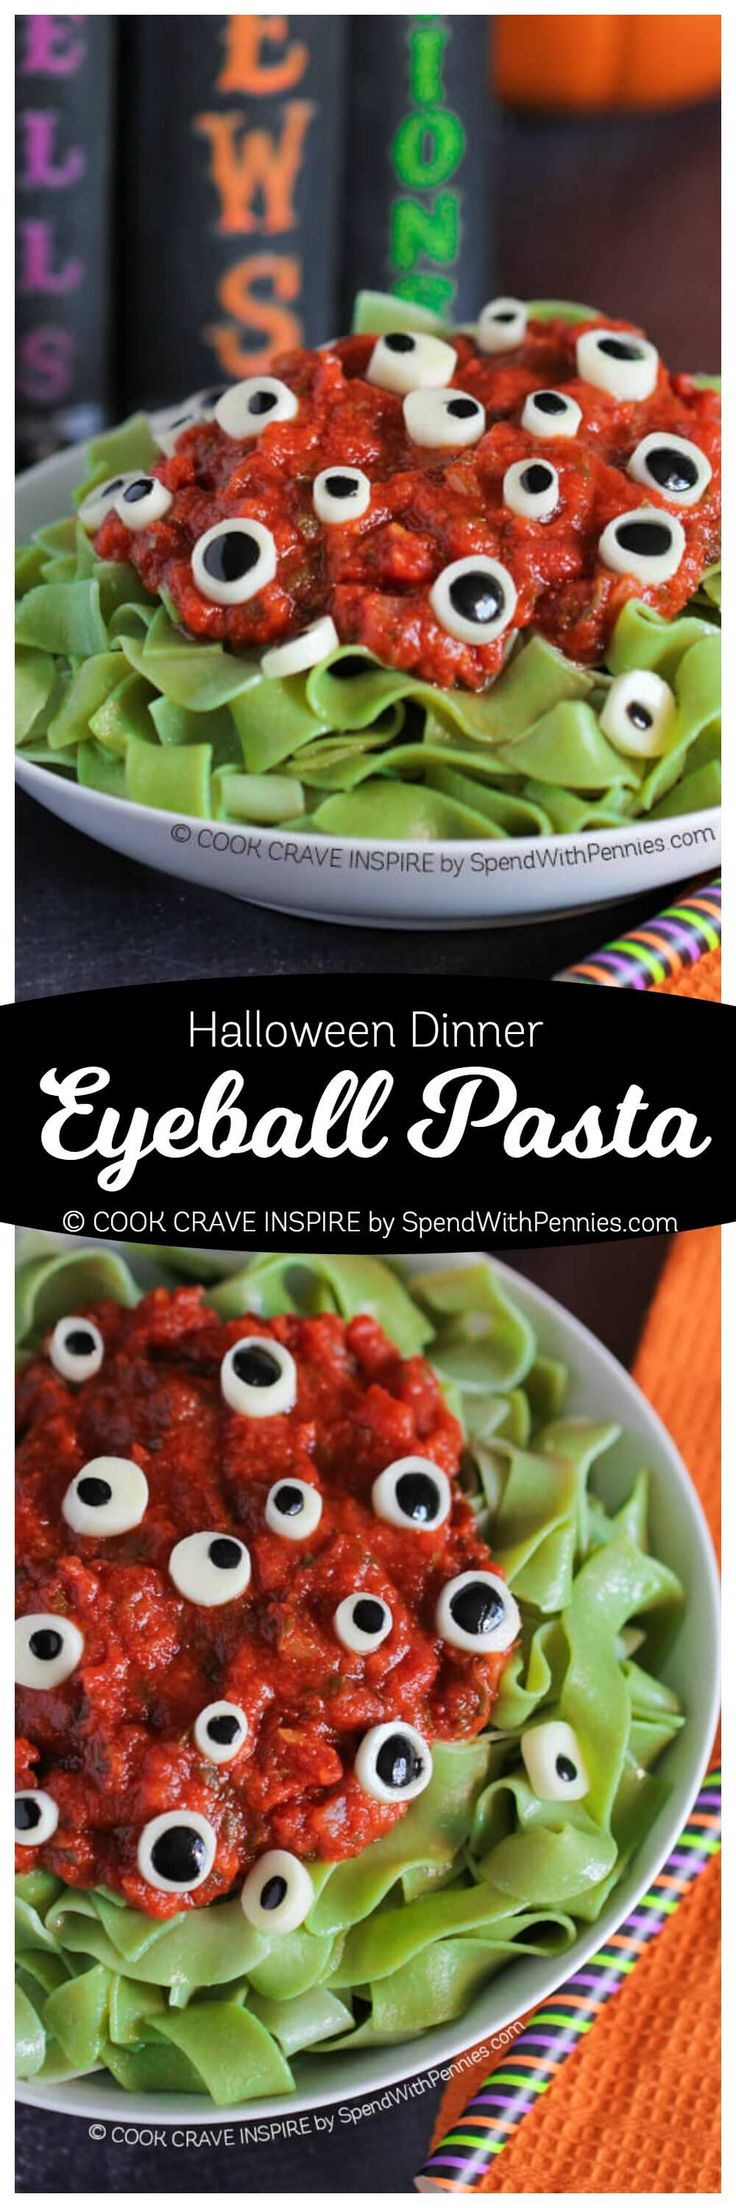 eyeball pasta halloween dinner idea - Halloween Healthy Food